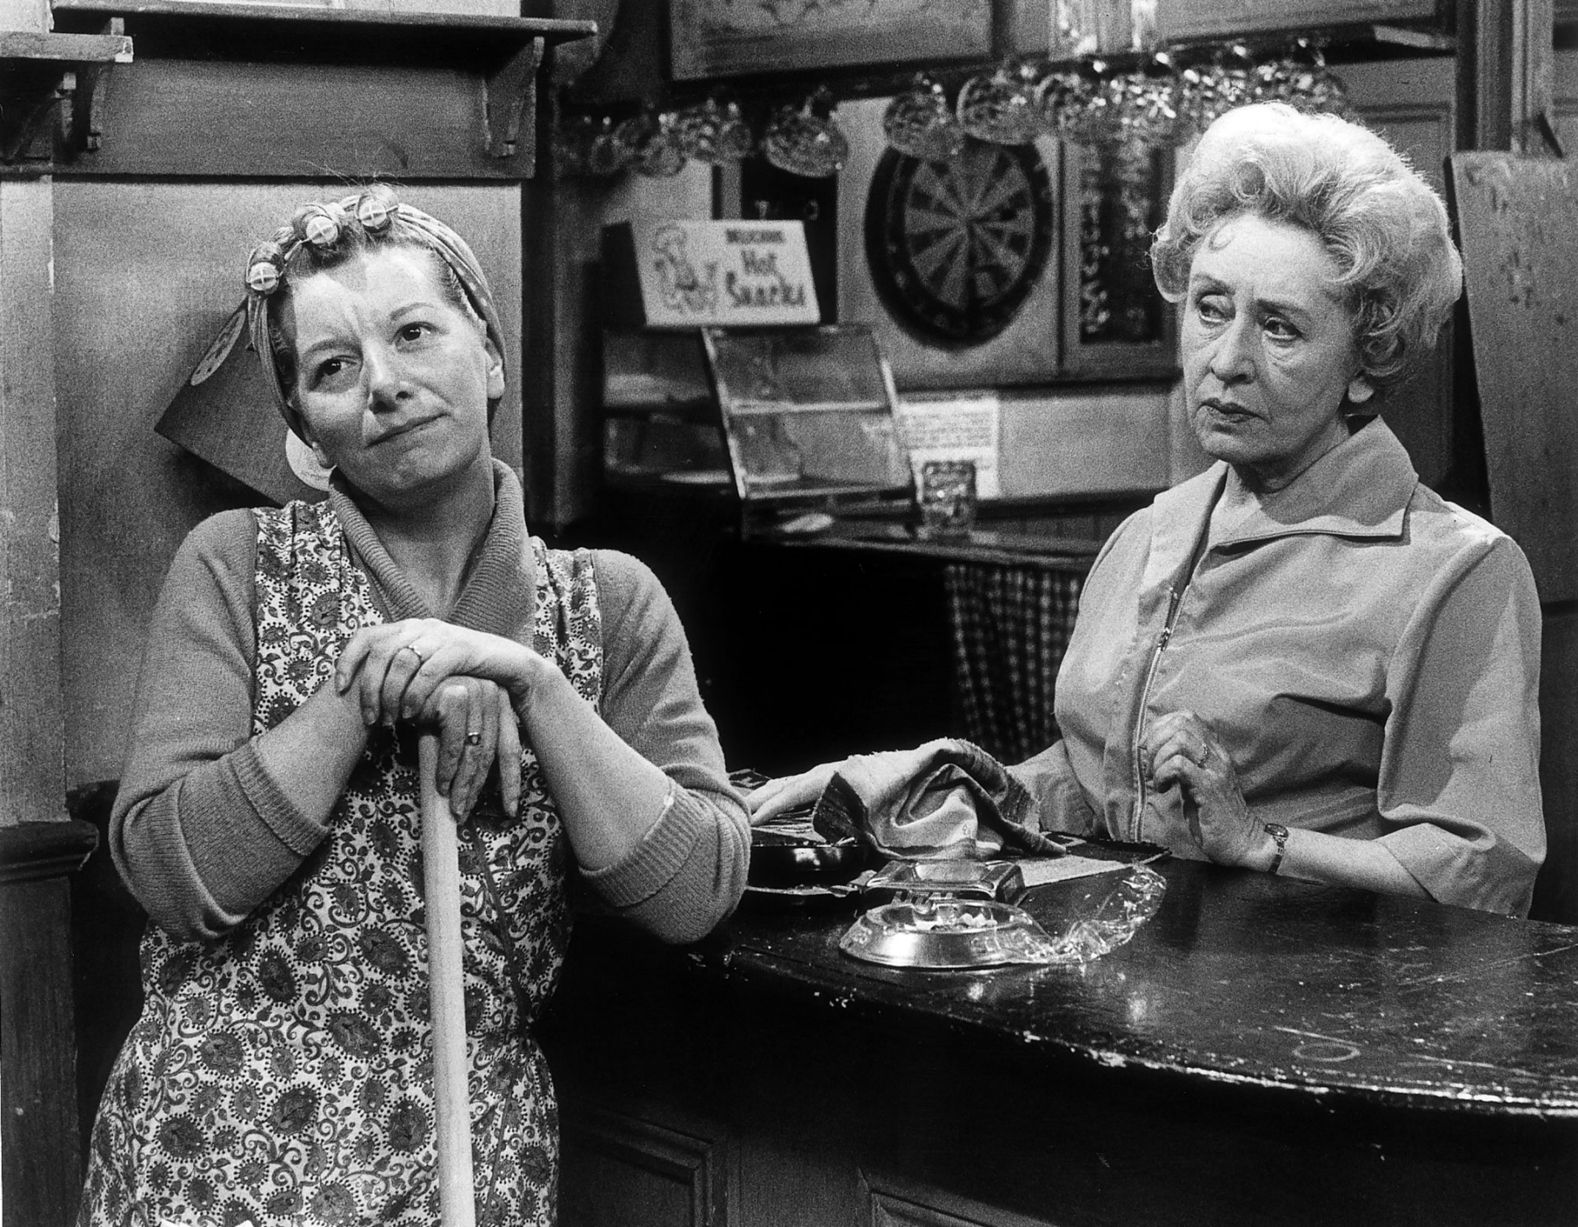 WA1176995 20 Things You Never Knew About Coronation Street